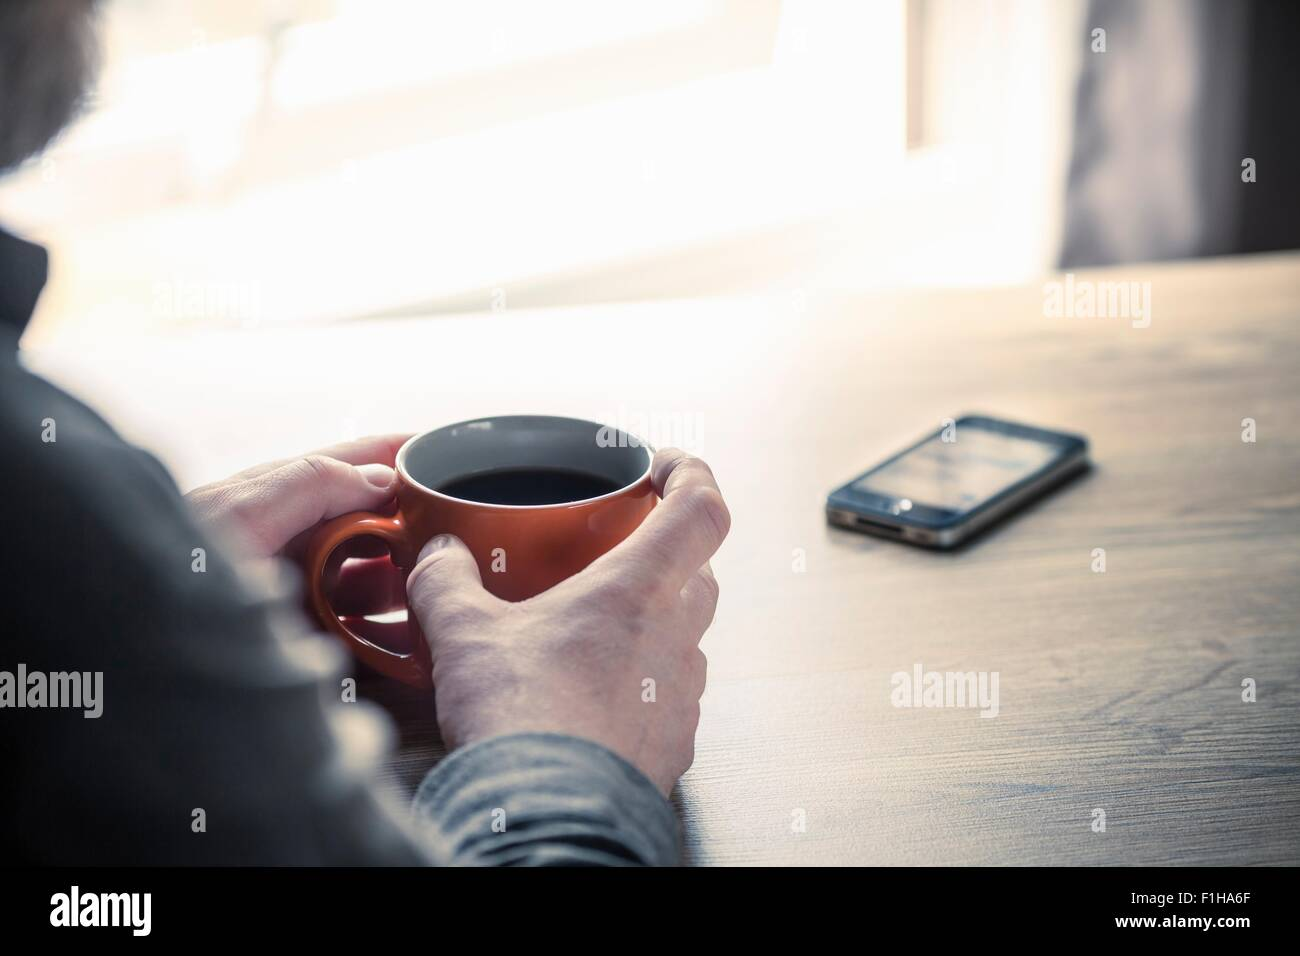 Over shoulder view of man drinking coffee with smartphone on desk - Stock Image